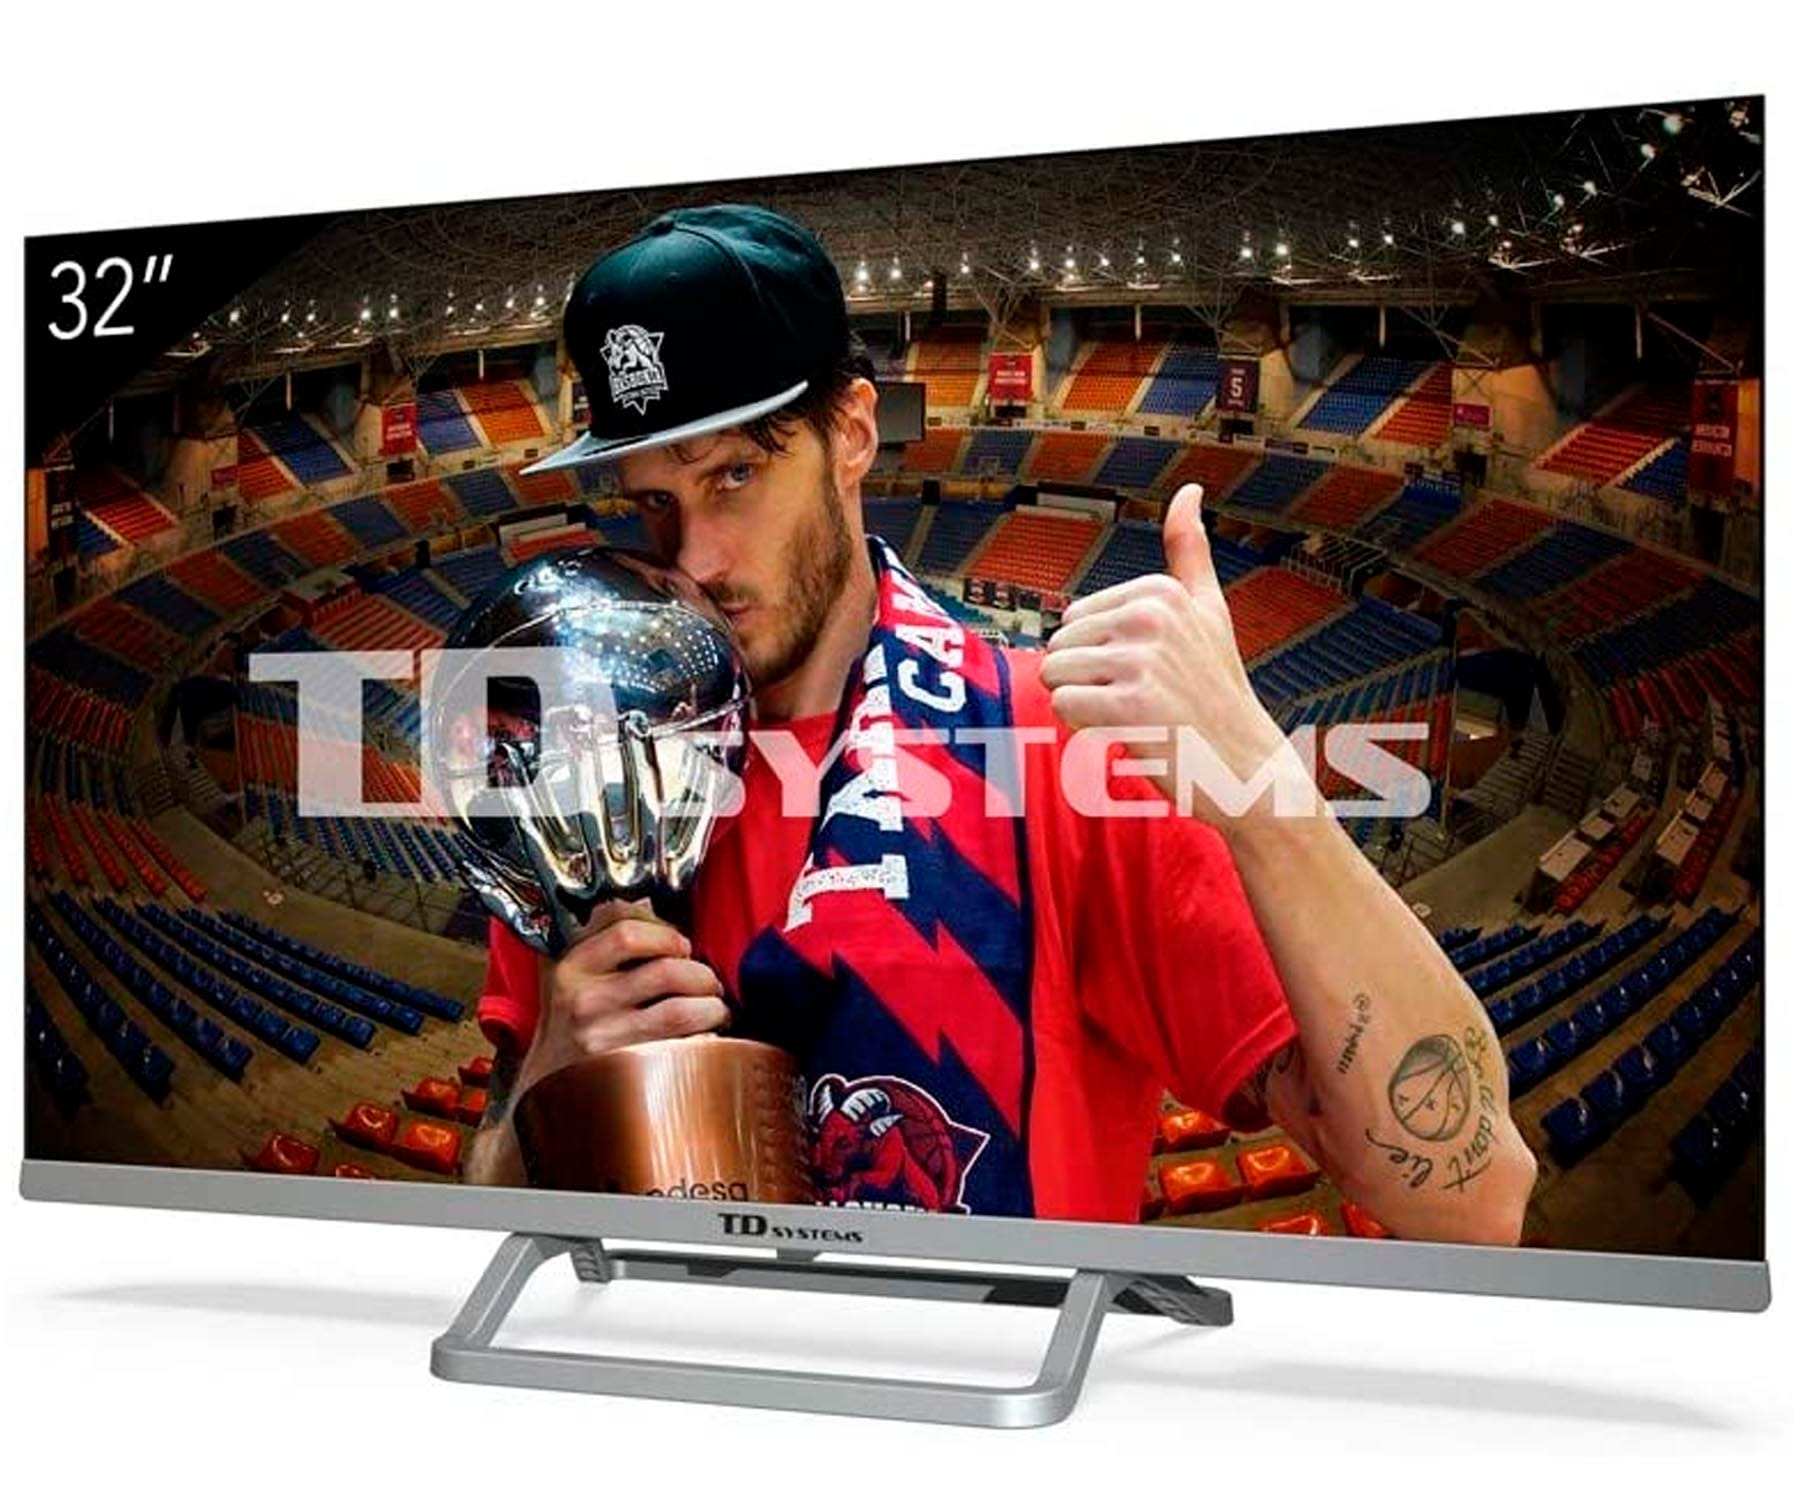 TD SYSTEMS K32DLX11HS TELEVISOR 32'' LED SMART TV HD READY HDMI USB CI+ DOLBY DIGITAL PLUS